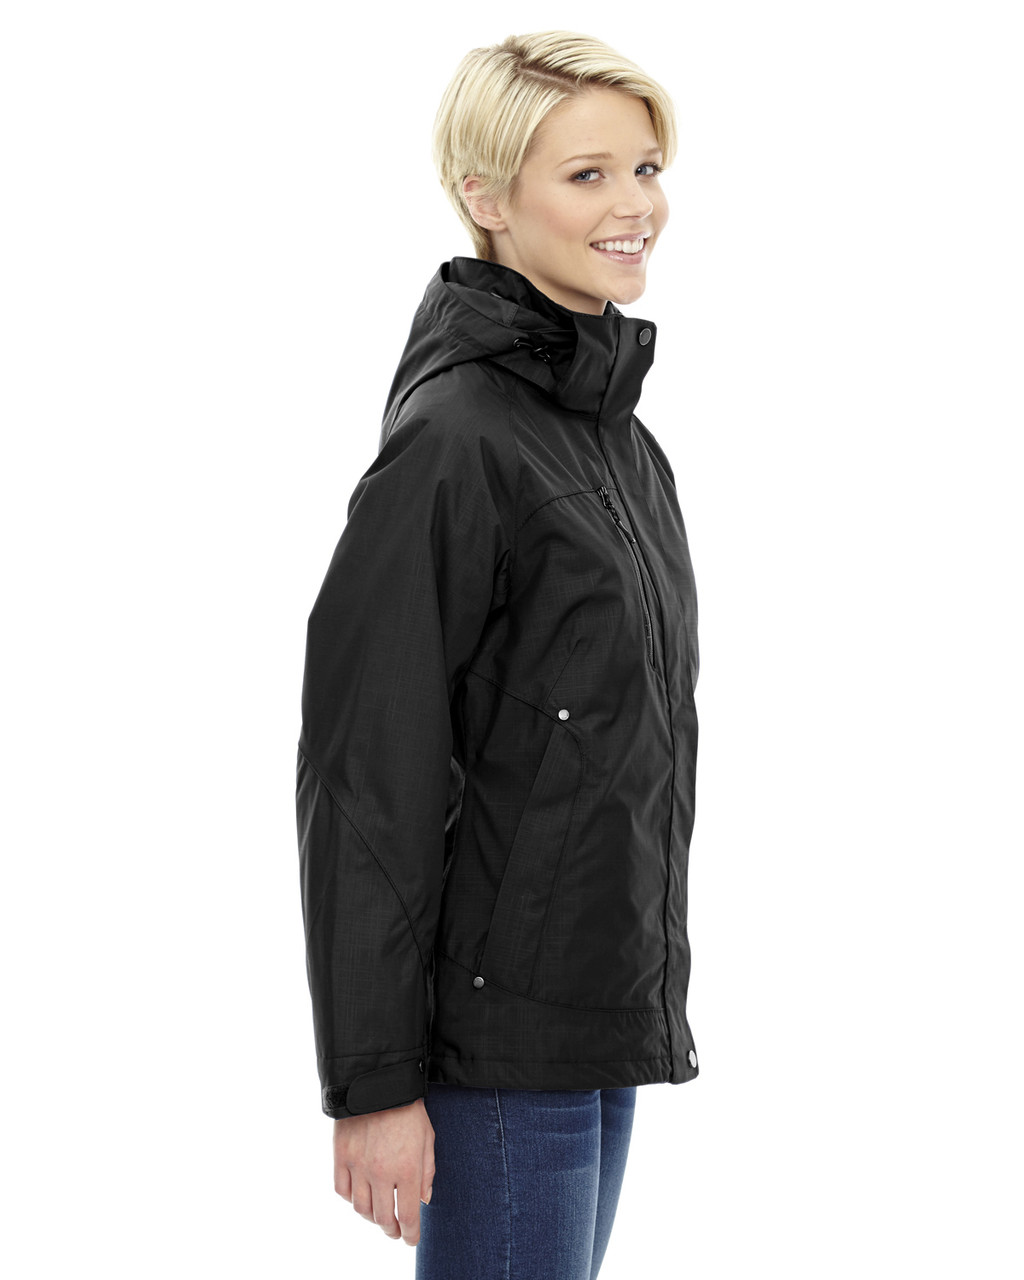 Black - side 78178 North End Caprice 3-in-1 Jacket with Soft Shell Liner | Blankclothing.ca